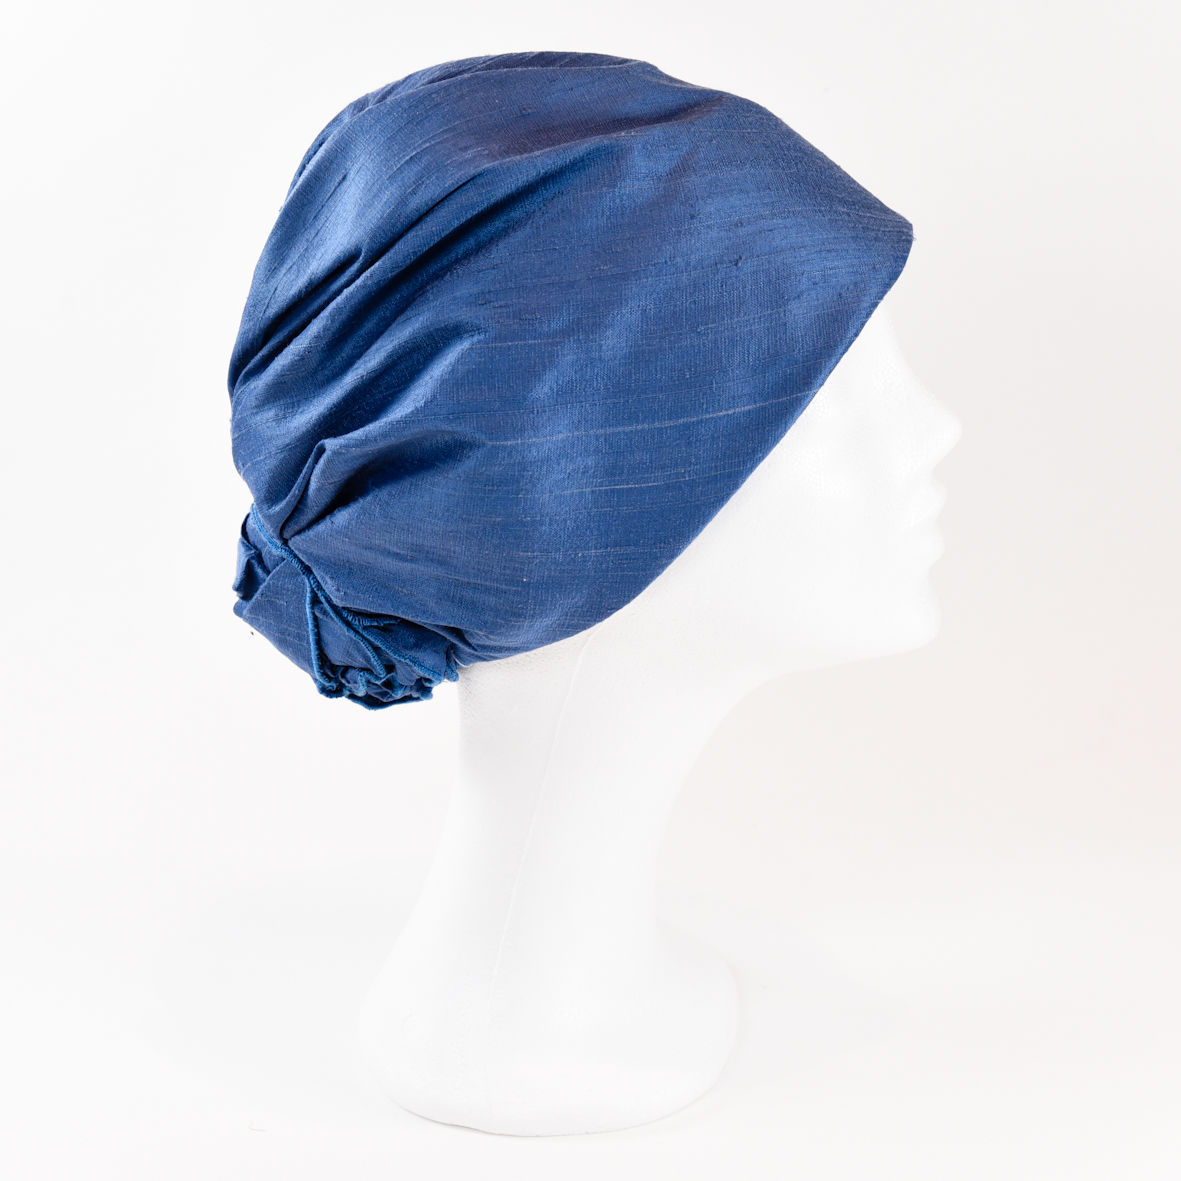 Silk Turban - Ocean Blue - product images  of